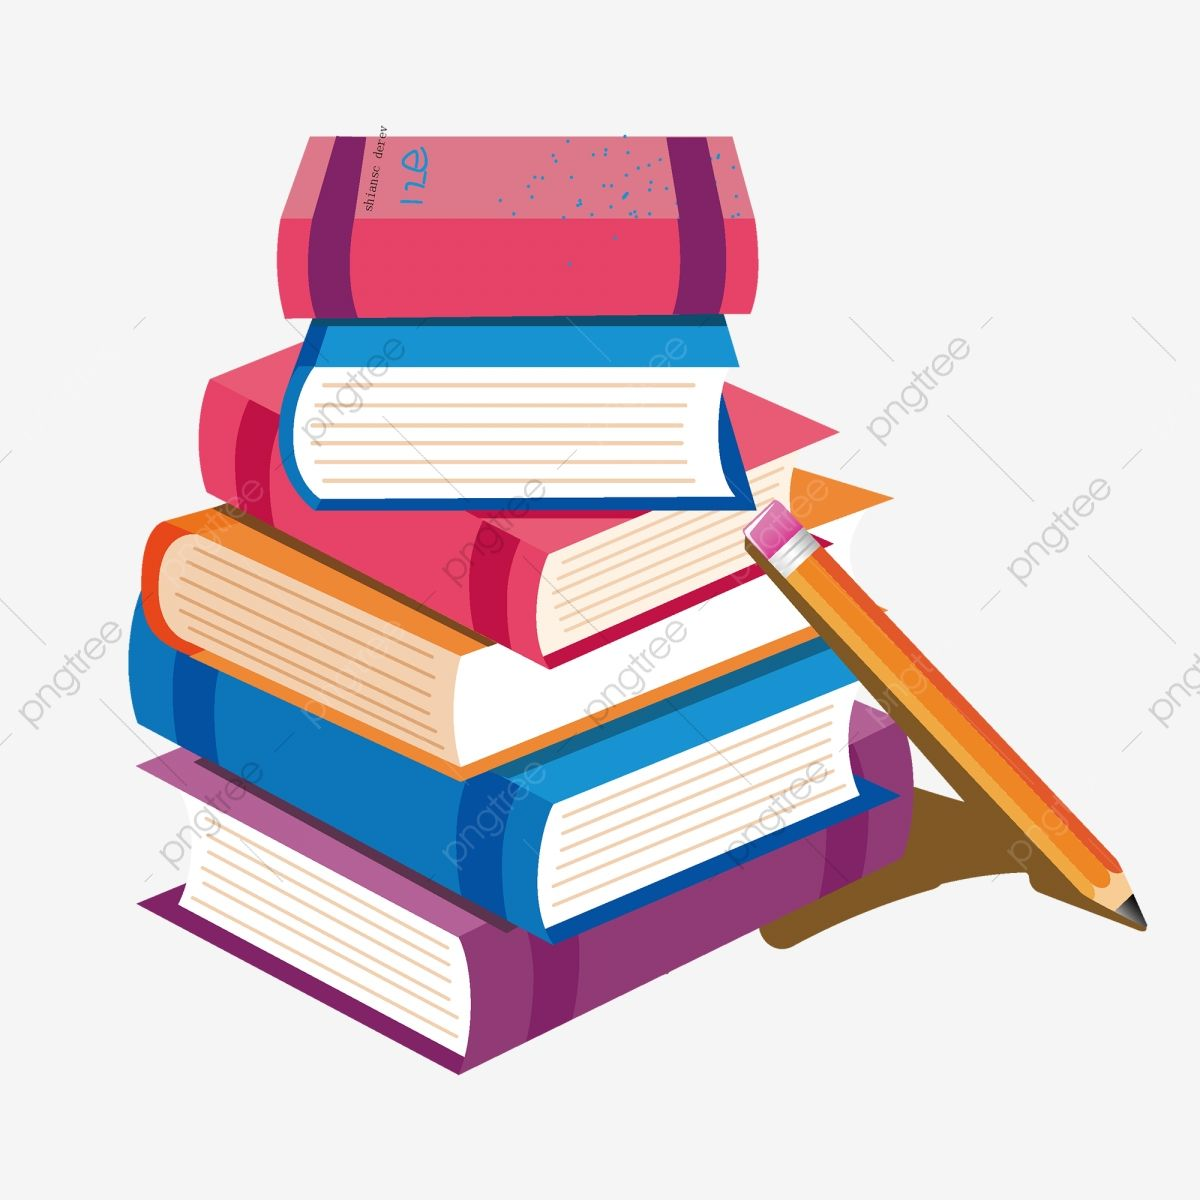 Hand Drawn Cartoon A Pile Of Books And Pencil Element Book Clipart Cartoon A Pile Of Books Png And Vector With Transparent Background For Free Download How To Draw Hands Best